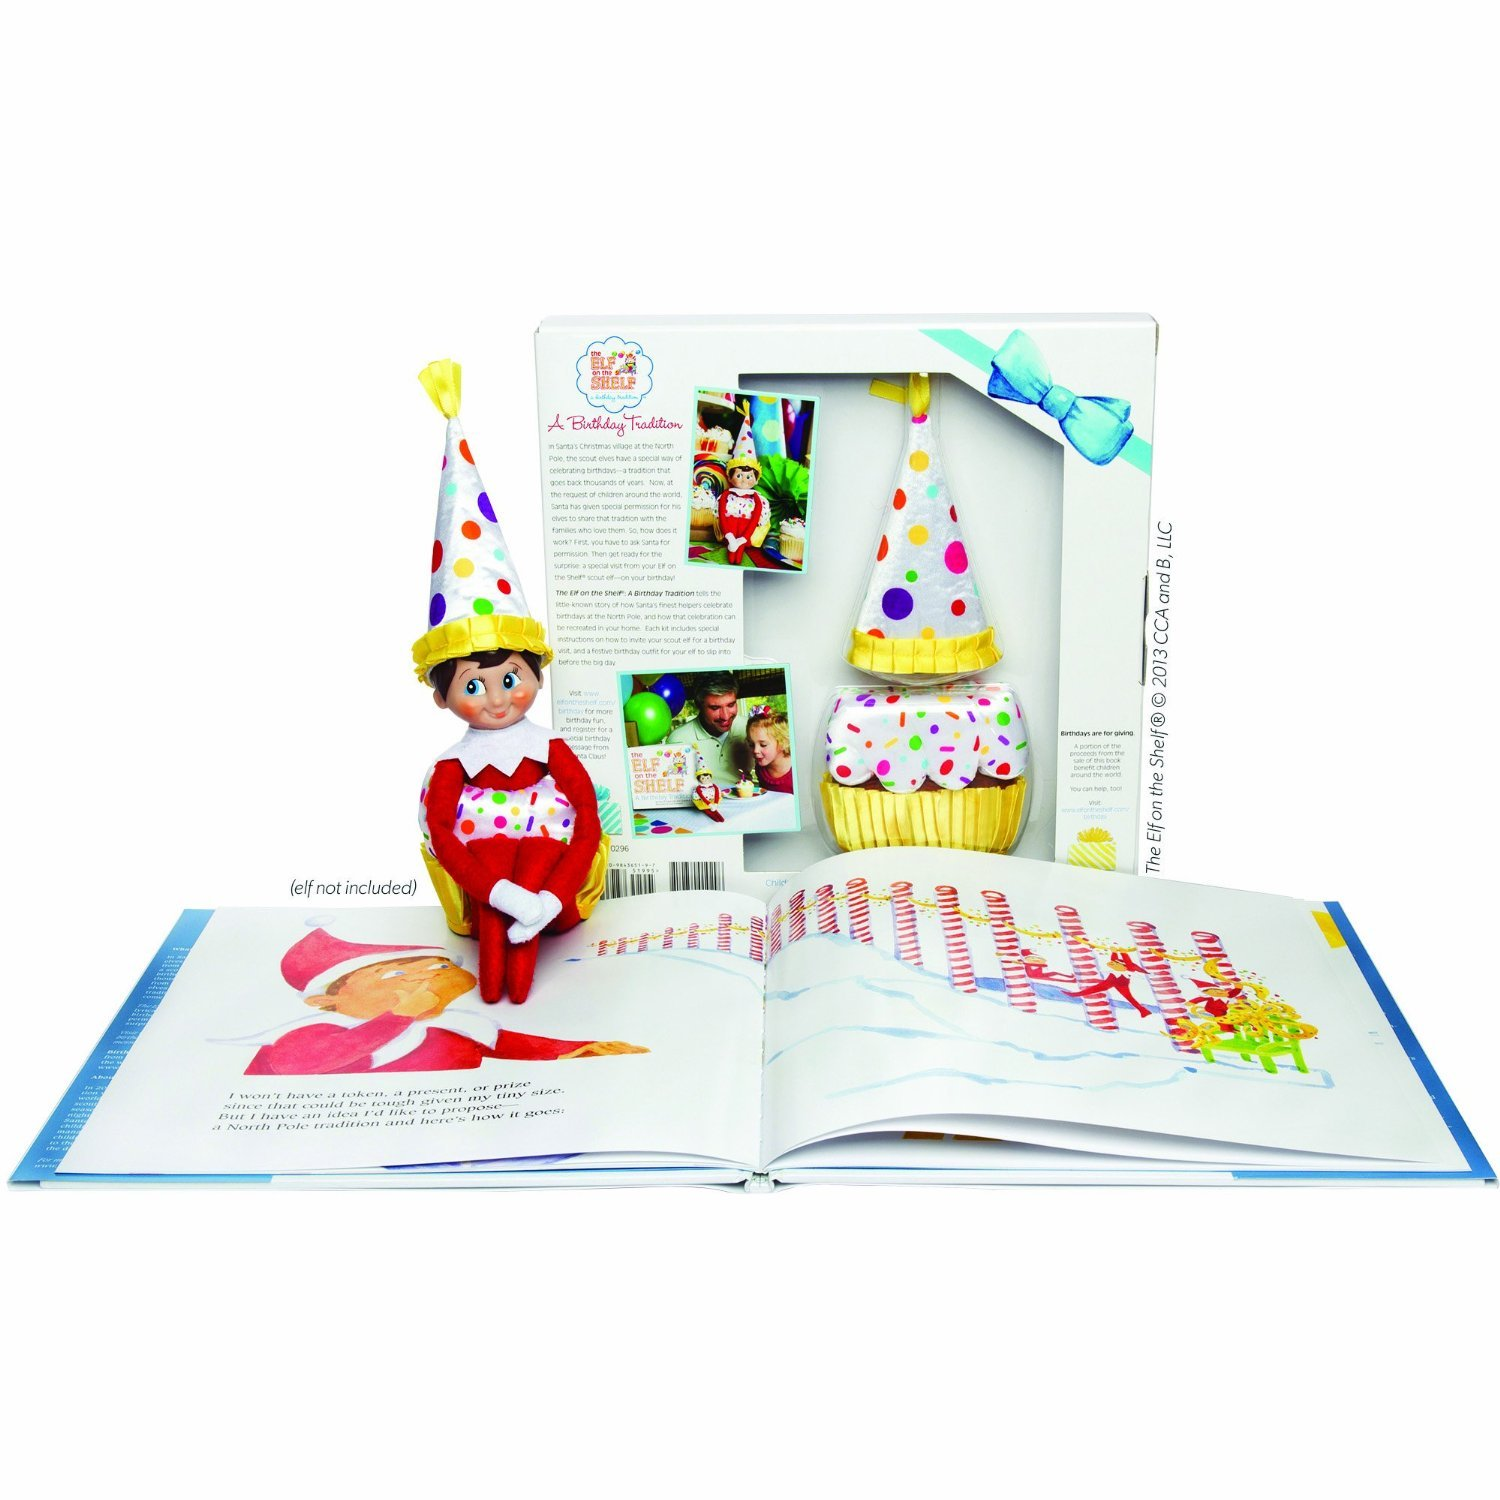 Amazon.com: Elf on the Shelf A Birthday Tradition: Toys & Games